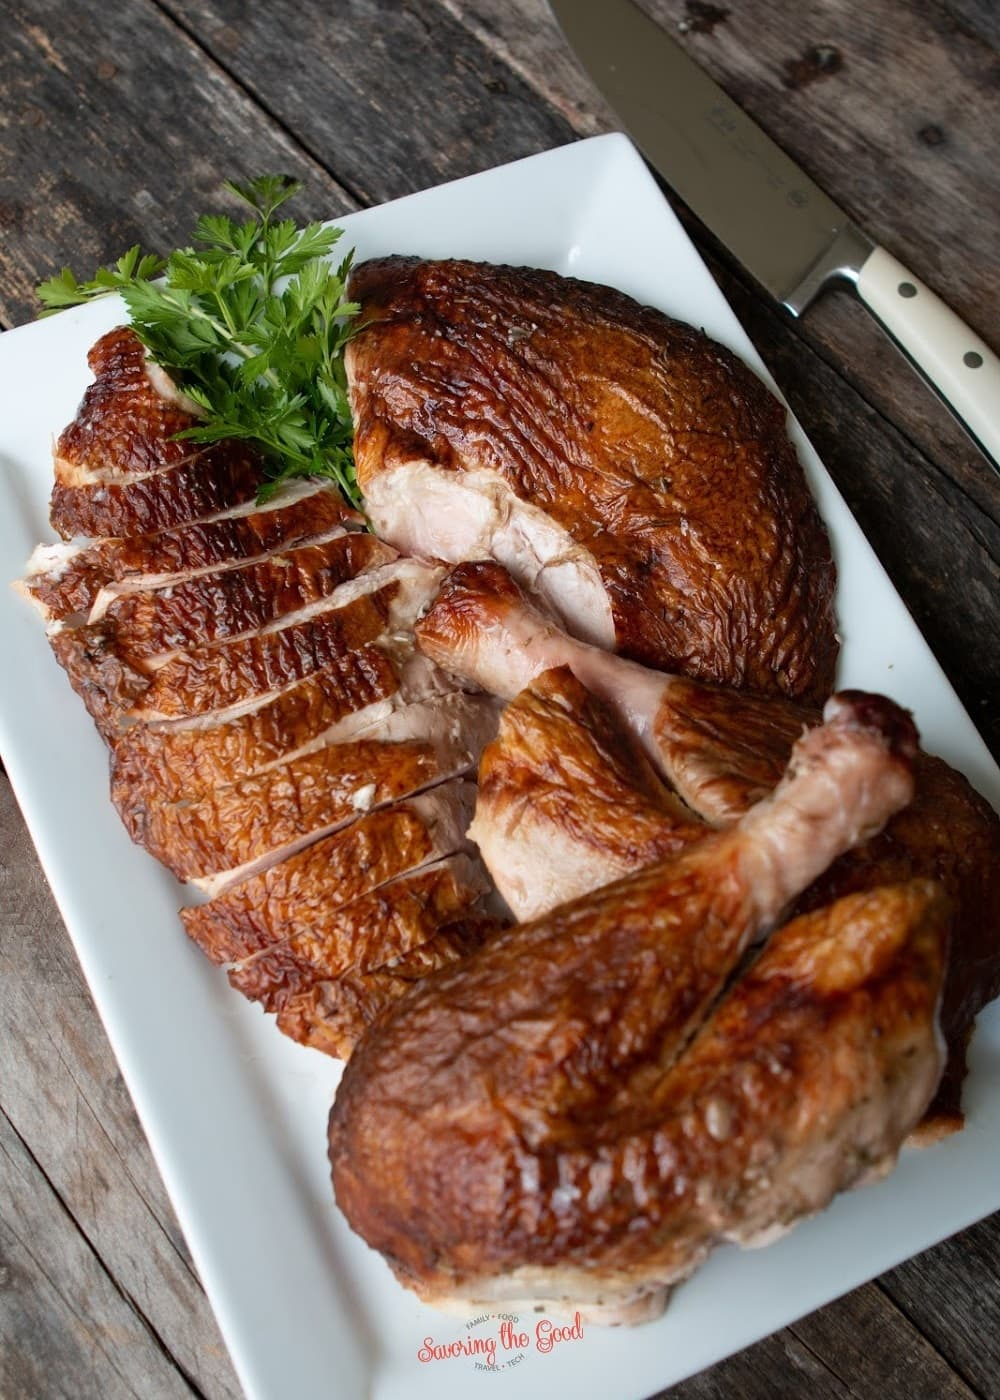 Whole smoked turkey cut into pieces